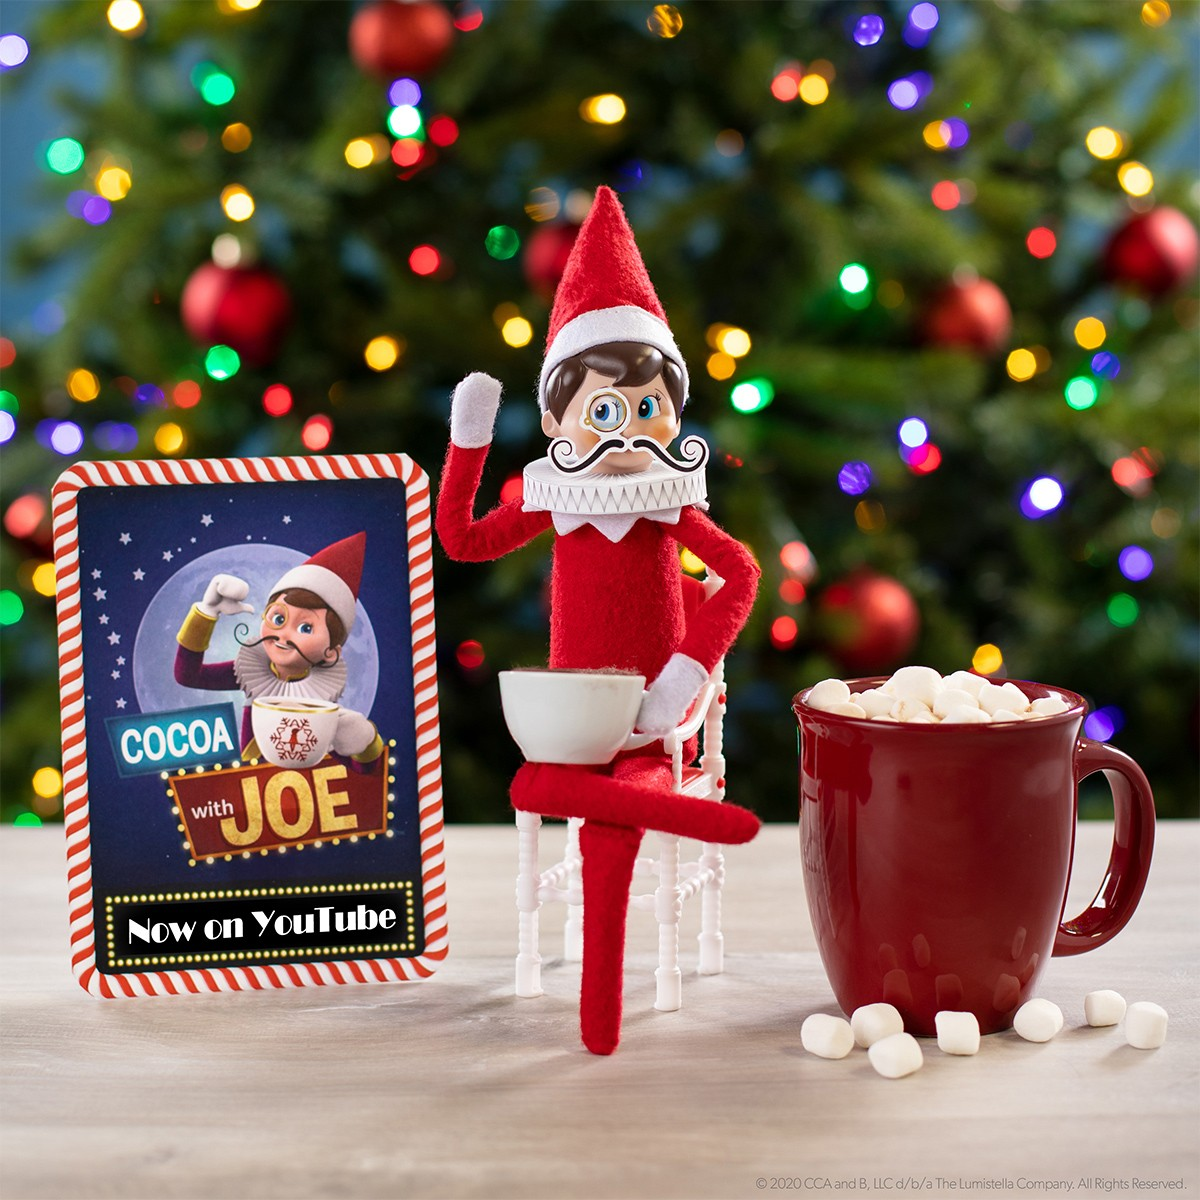 The Star of the Show...Elf Joe! image